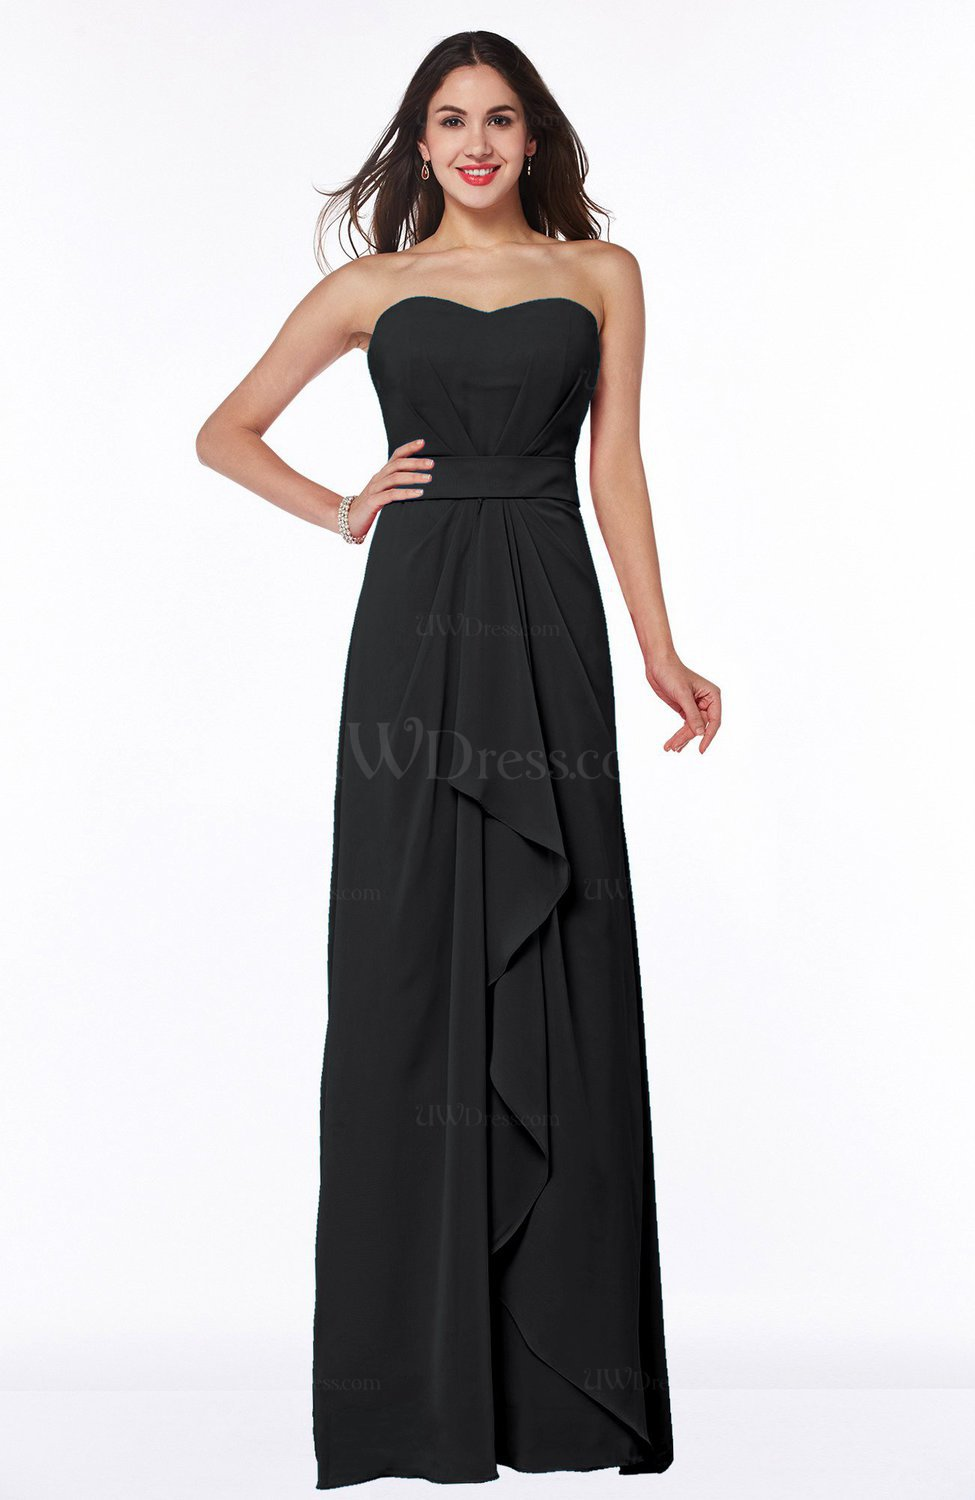 bf09b86c4af Black Traditional Strapless Zip up Chiffon Floor Length Plus Size  Bridesmaid Dresses (Style D08232)